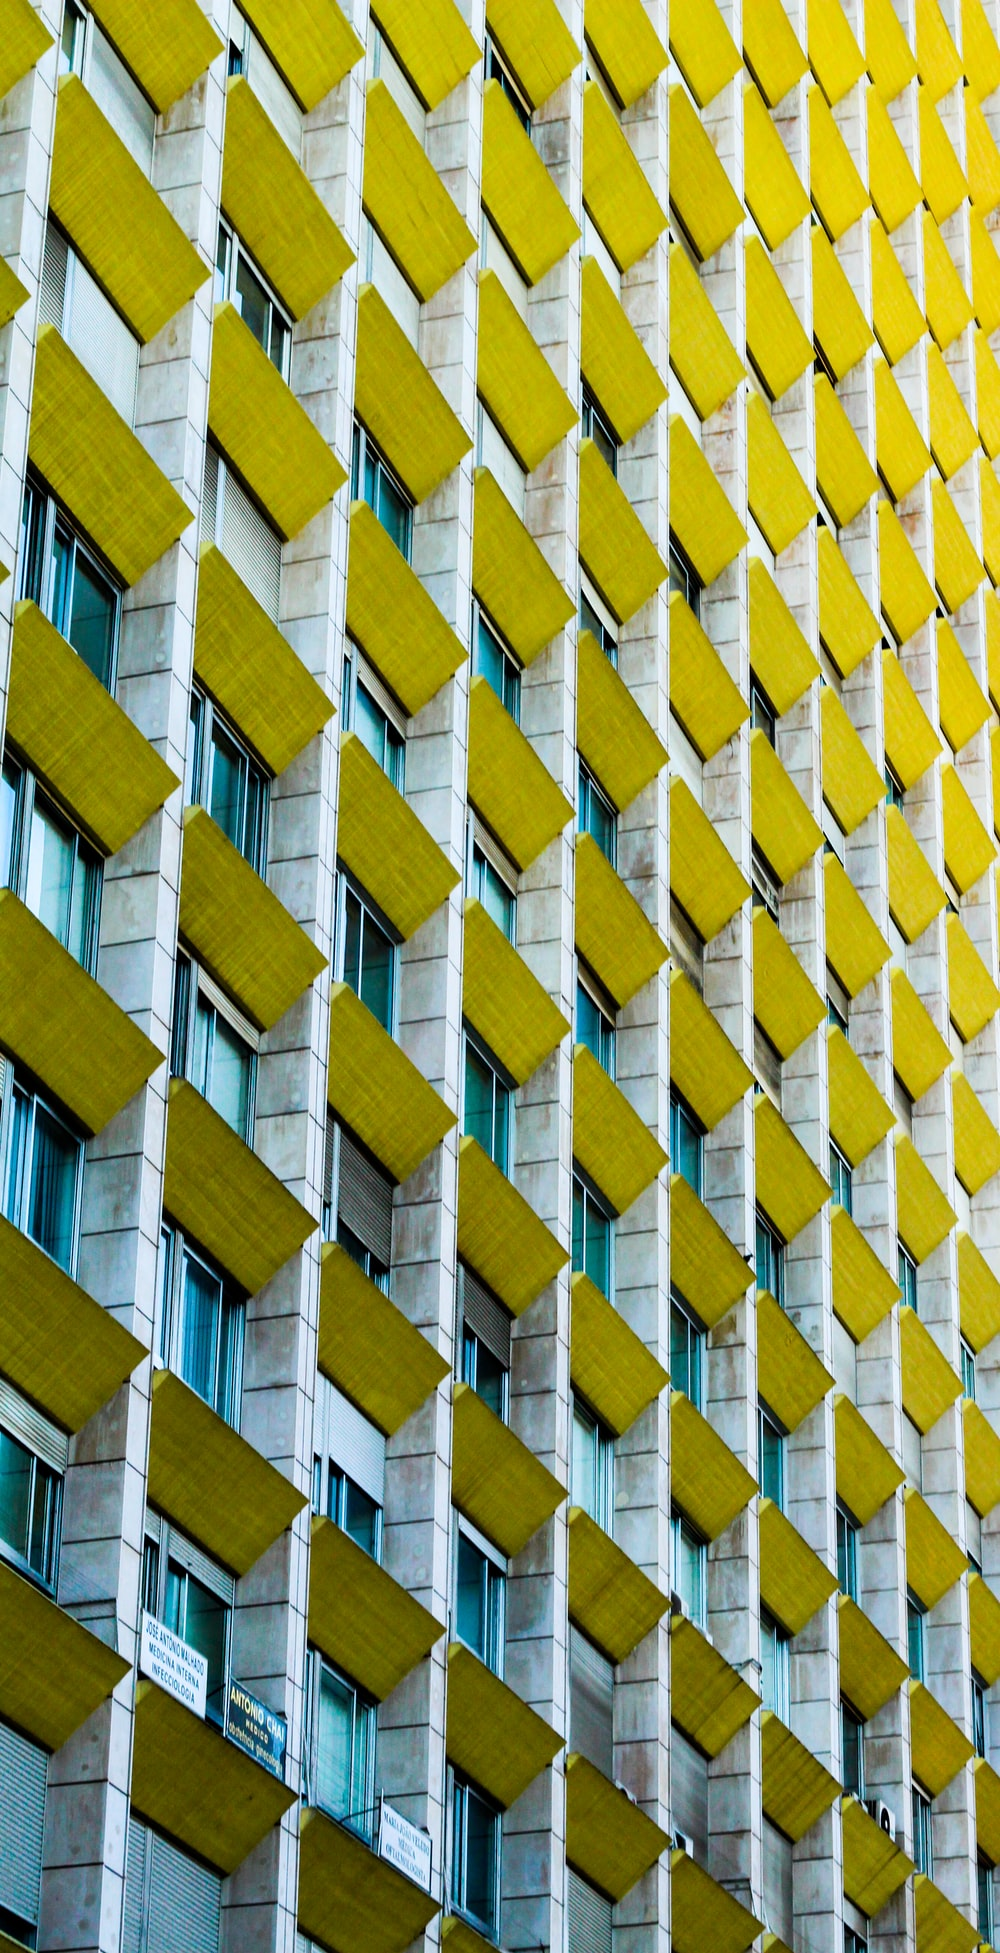 gray and yellow concrete high-rise building view during daytime